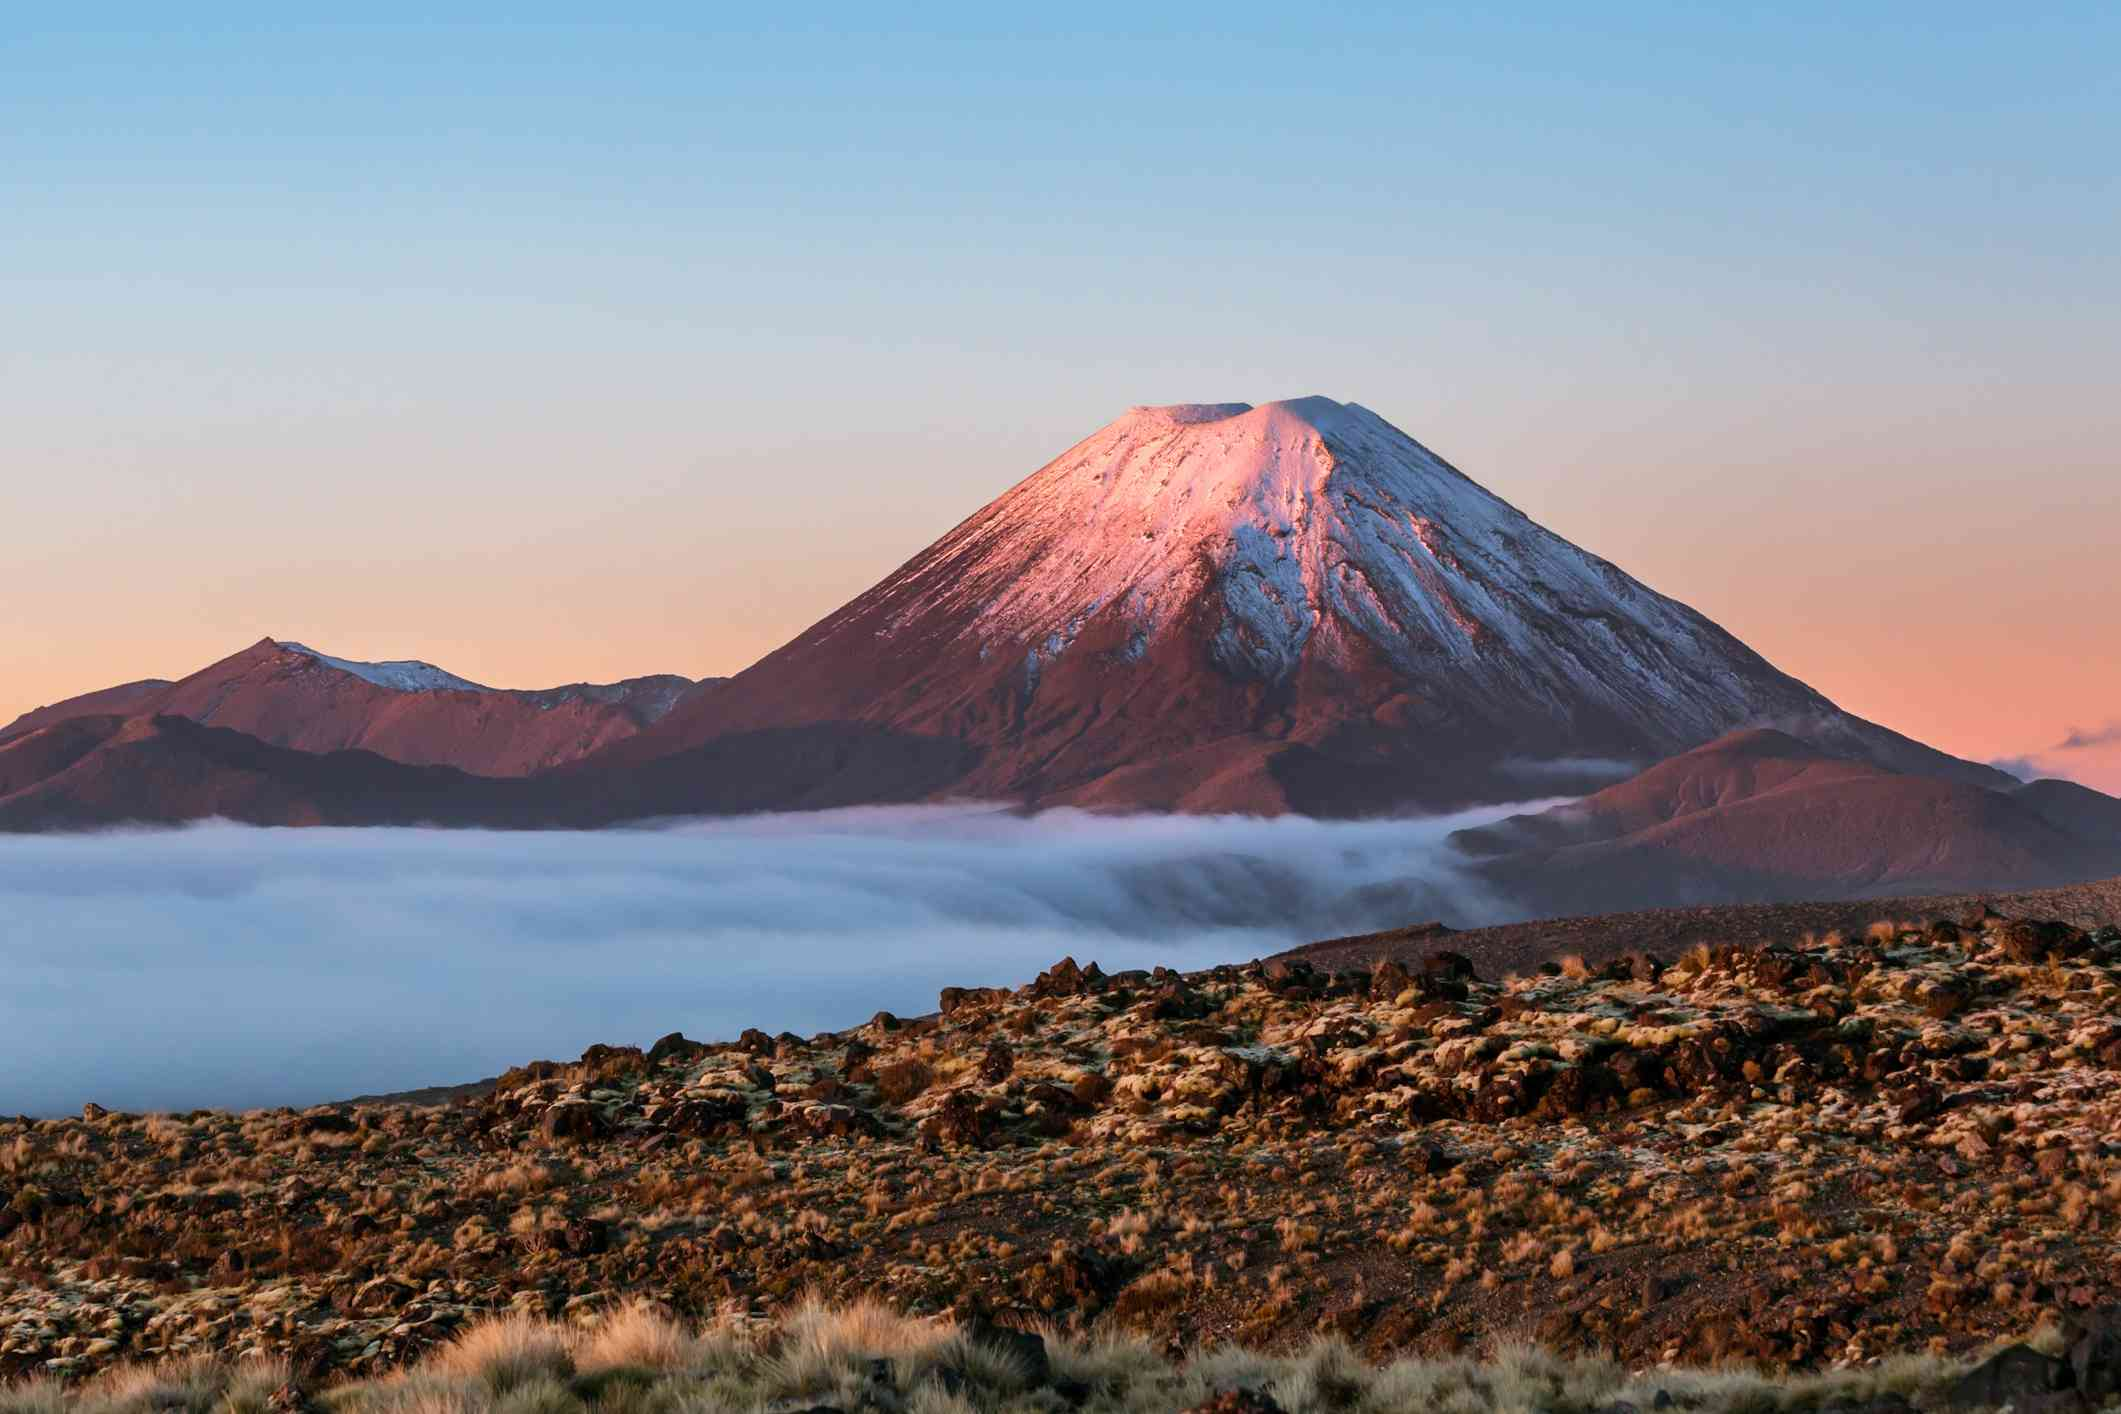 volcanic mountain rising out of rocky landscape